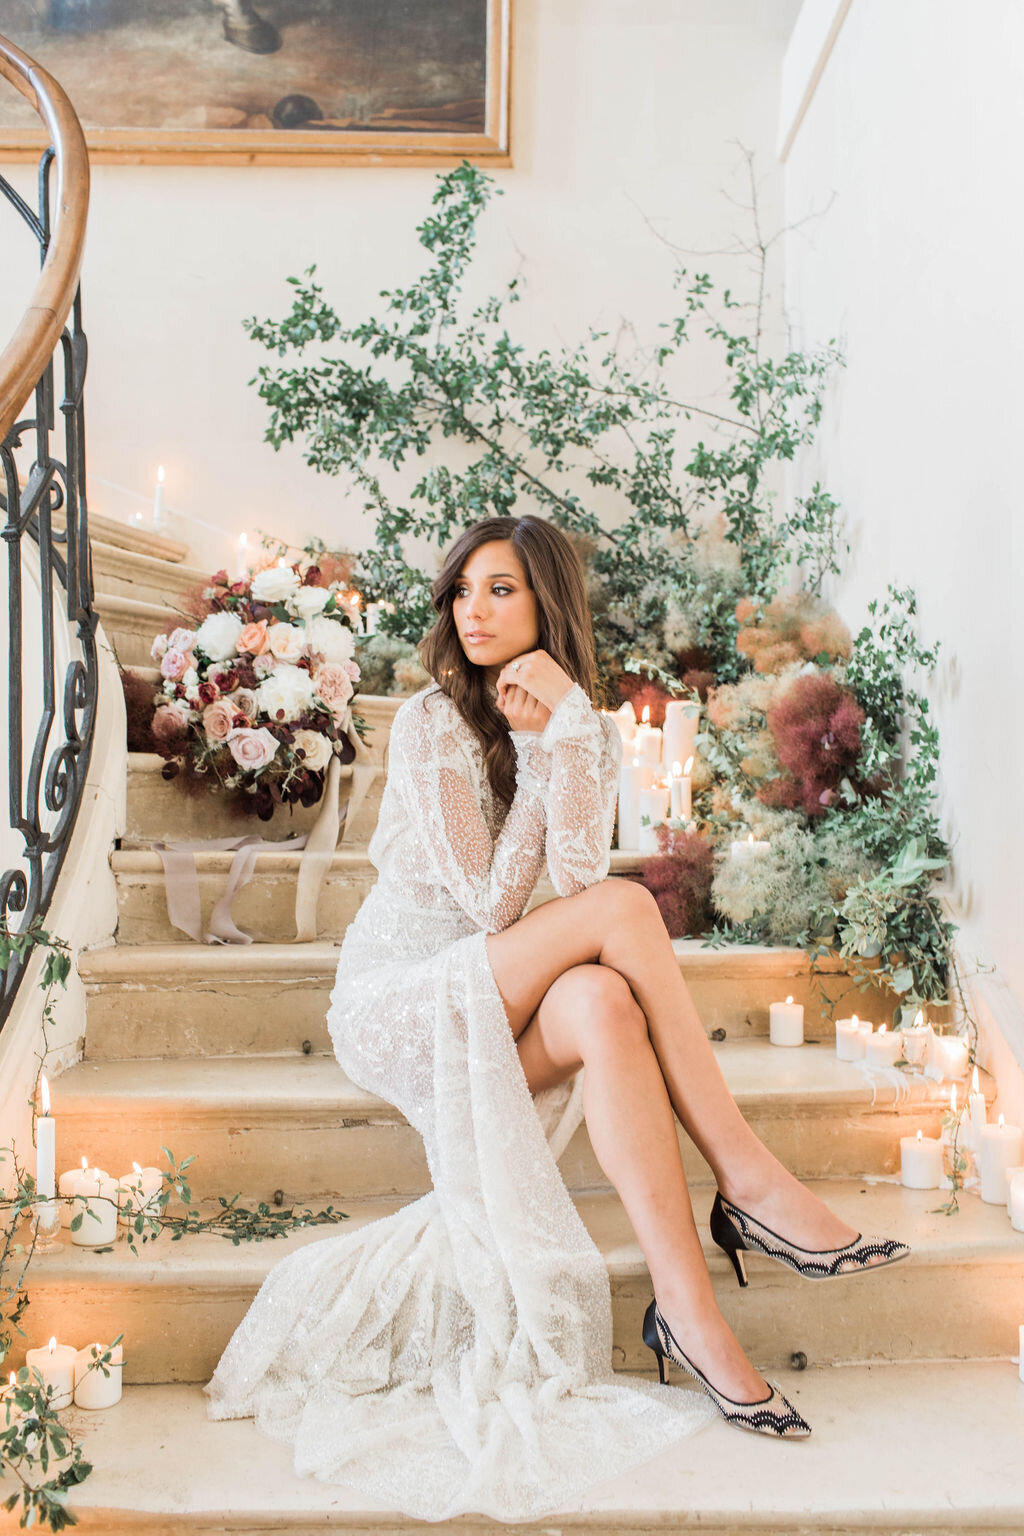 Bride posed on staircase at chateau wedding venue